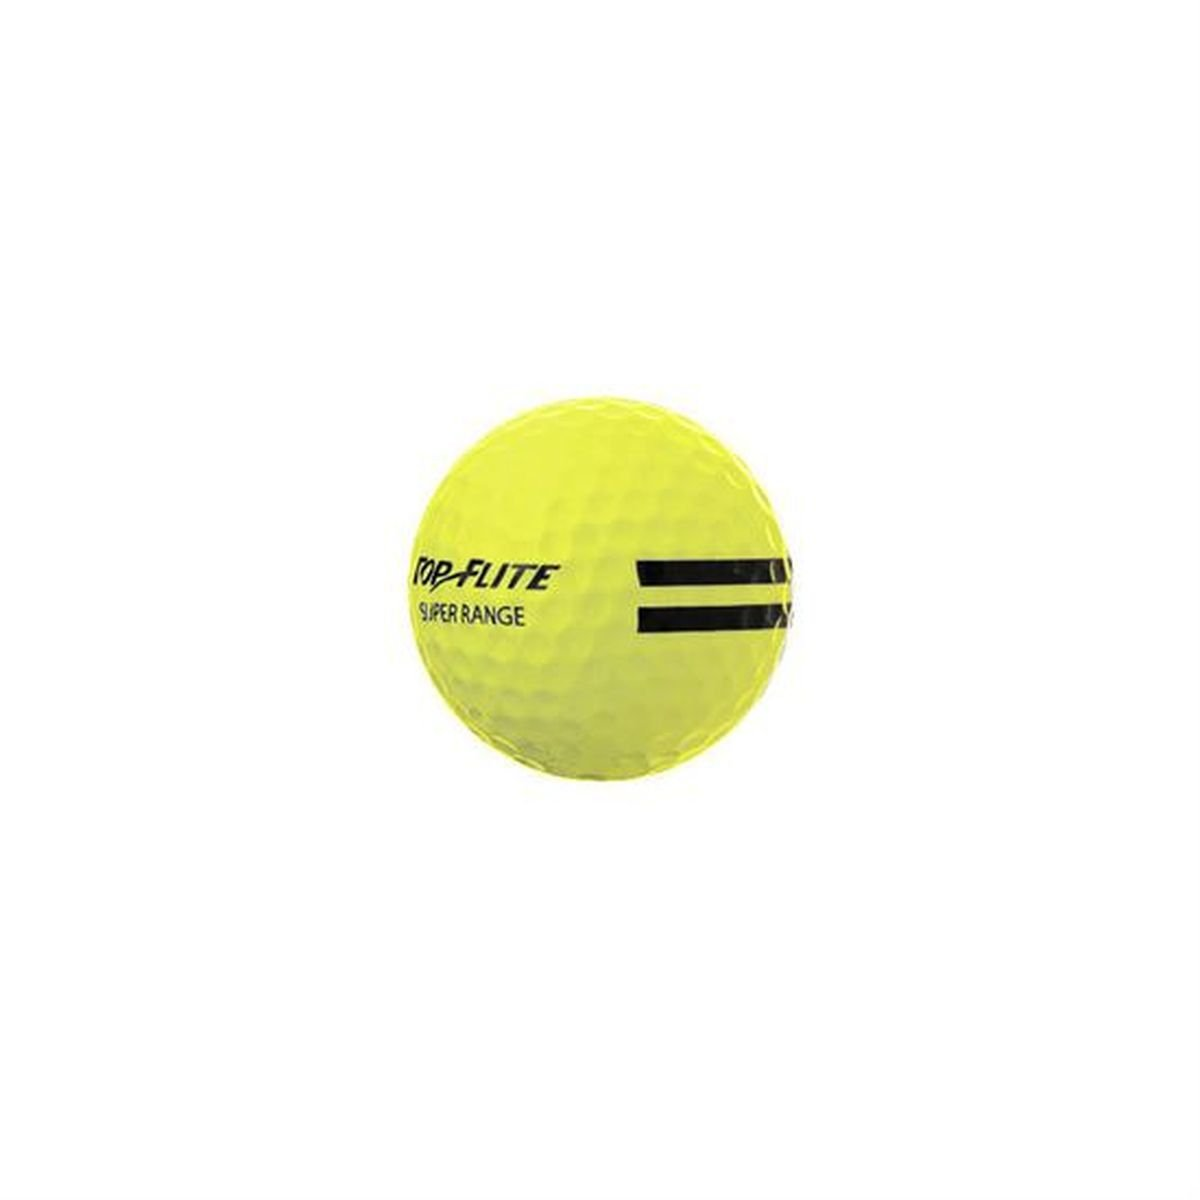 24 Pack Top Flite Super Range Golf Balls - Yellow by Top Flight (Image #1)